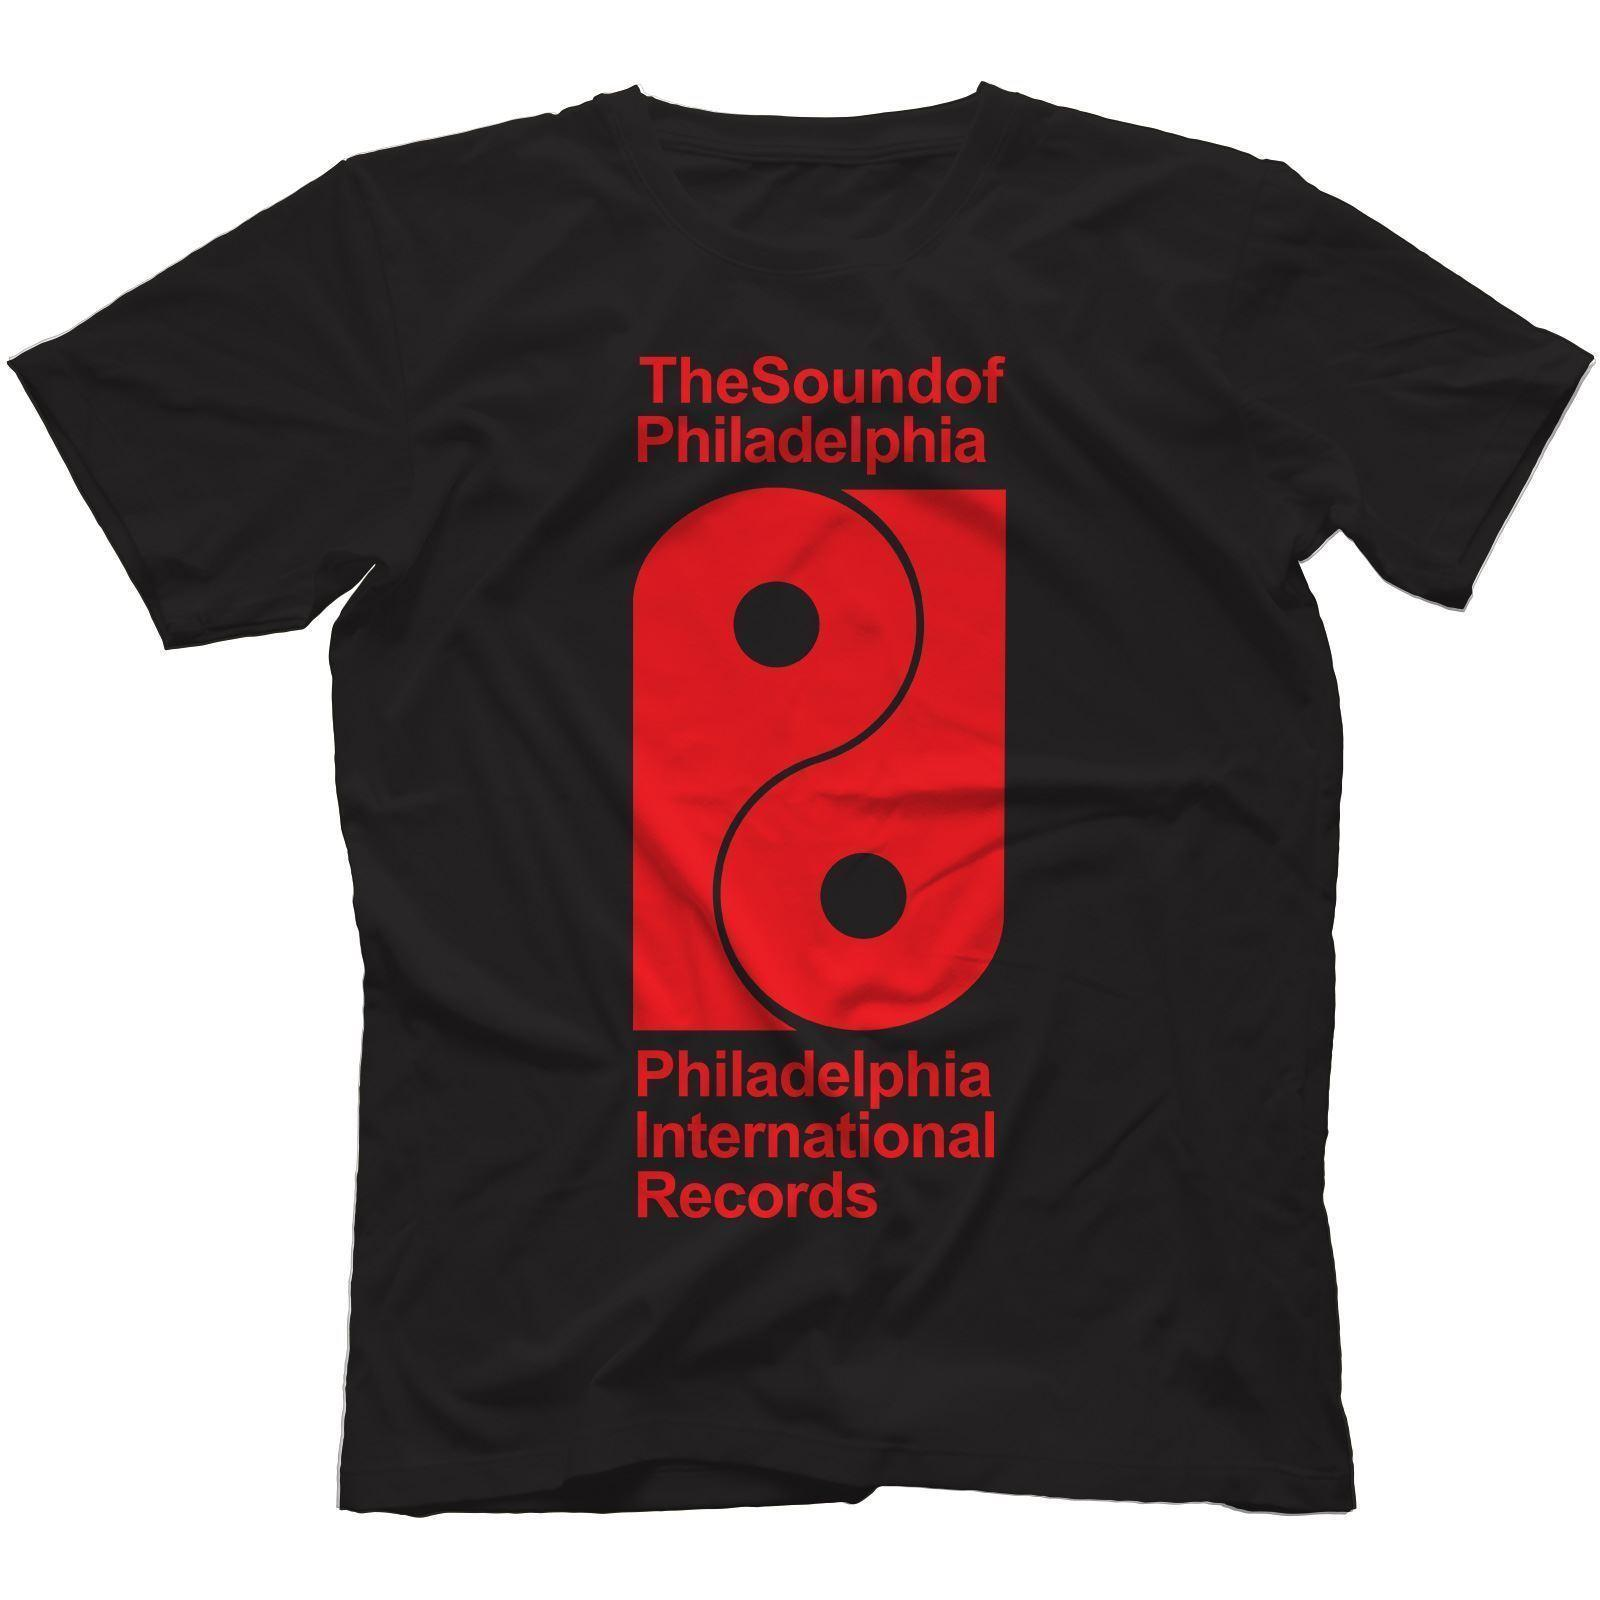 Philadelphia International Records camiseta 100% algodón Disco Tsop Soul Philly Funny Tops Tee Nuevo Unisex Funny Top Envío gratis